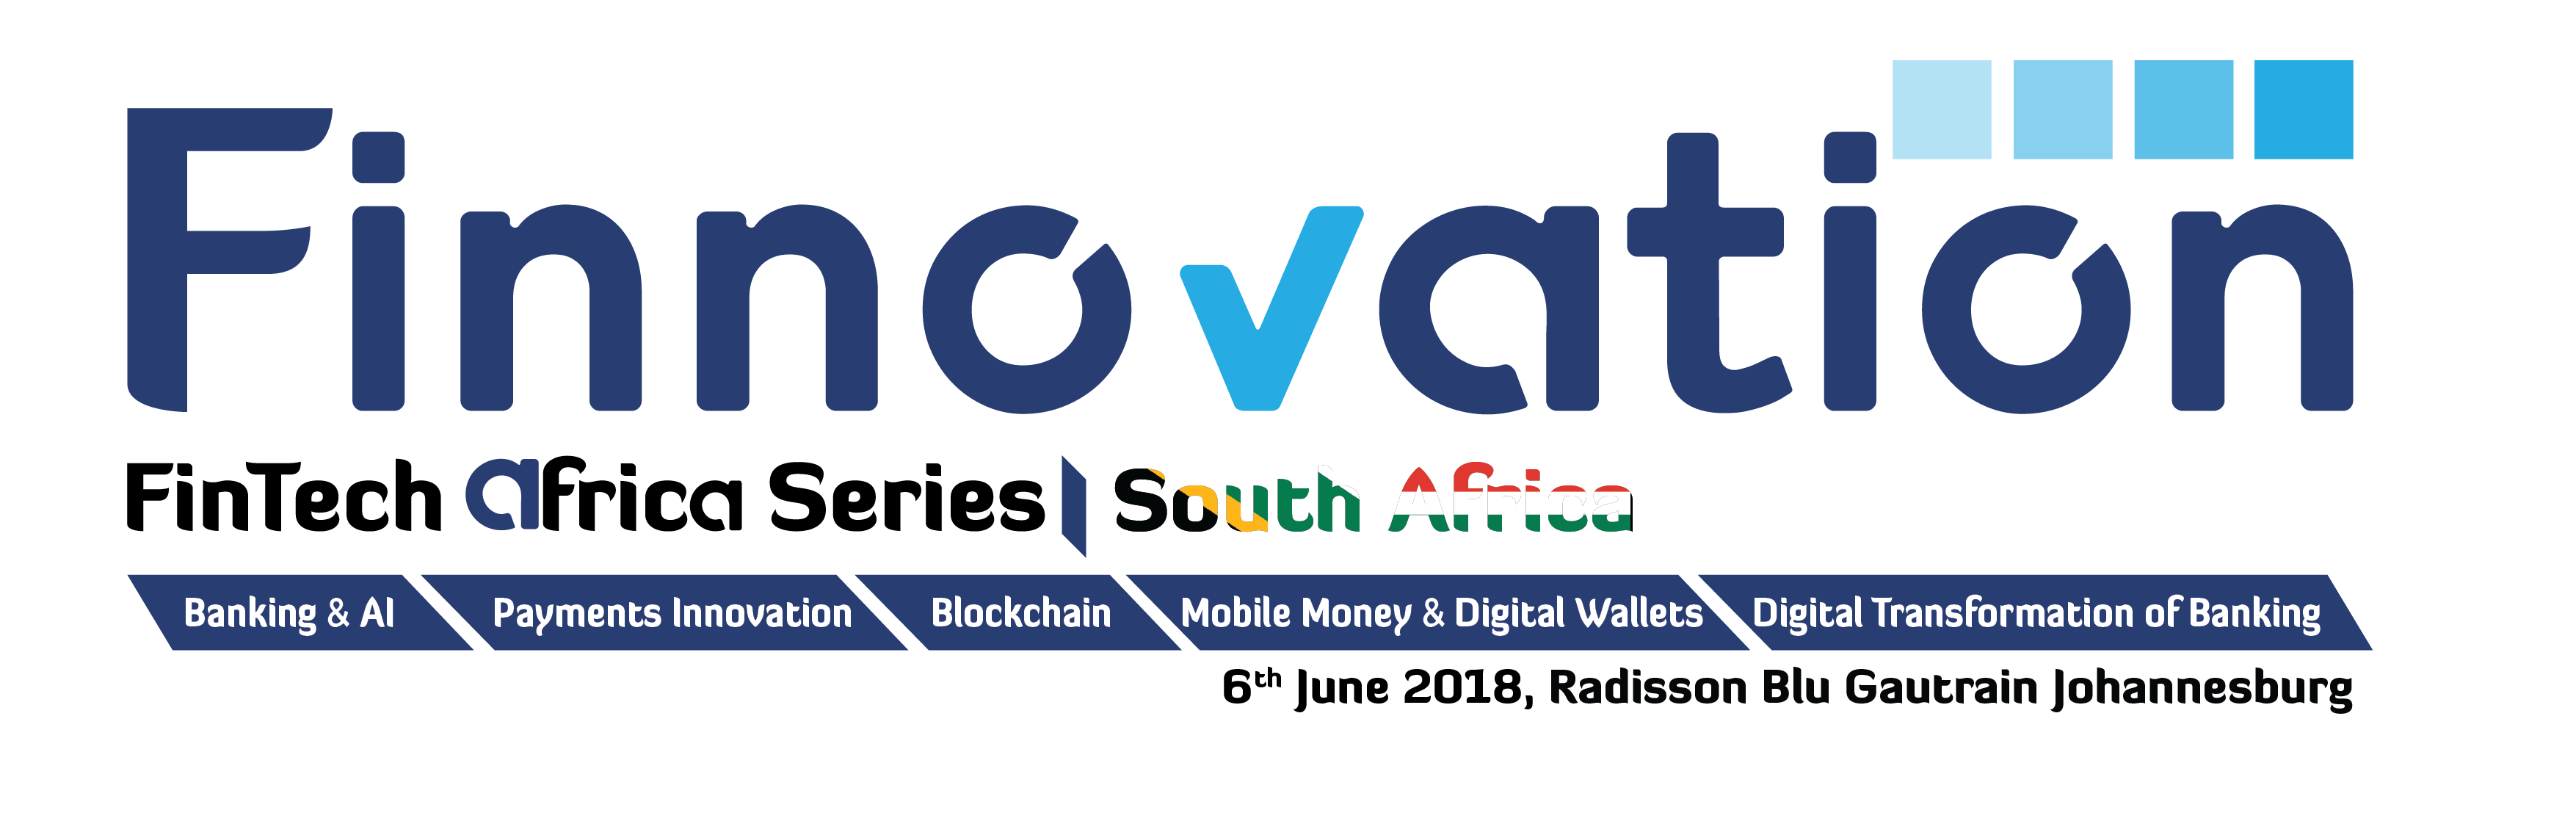 www.finnovationworld.com/southafrica